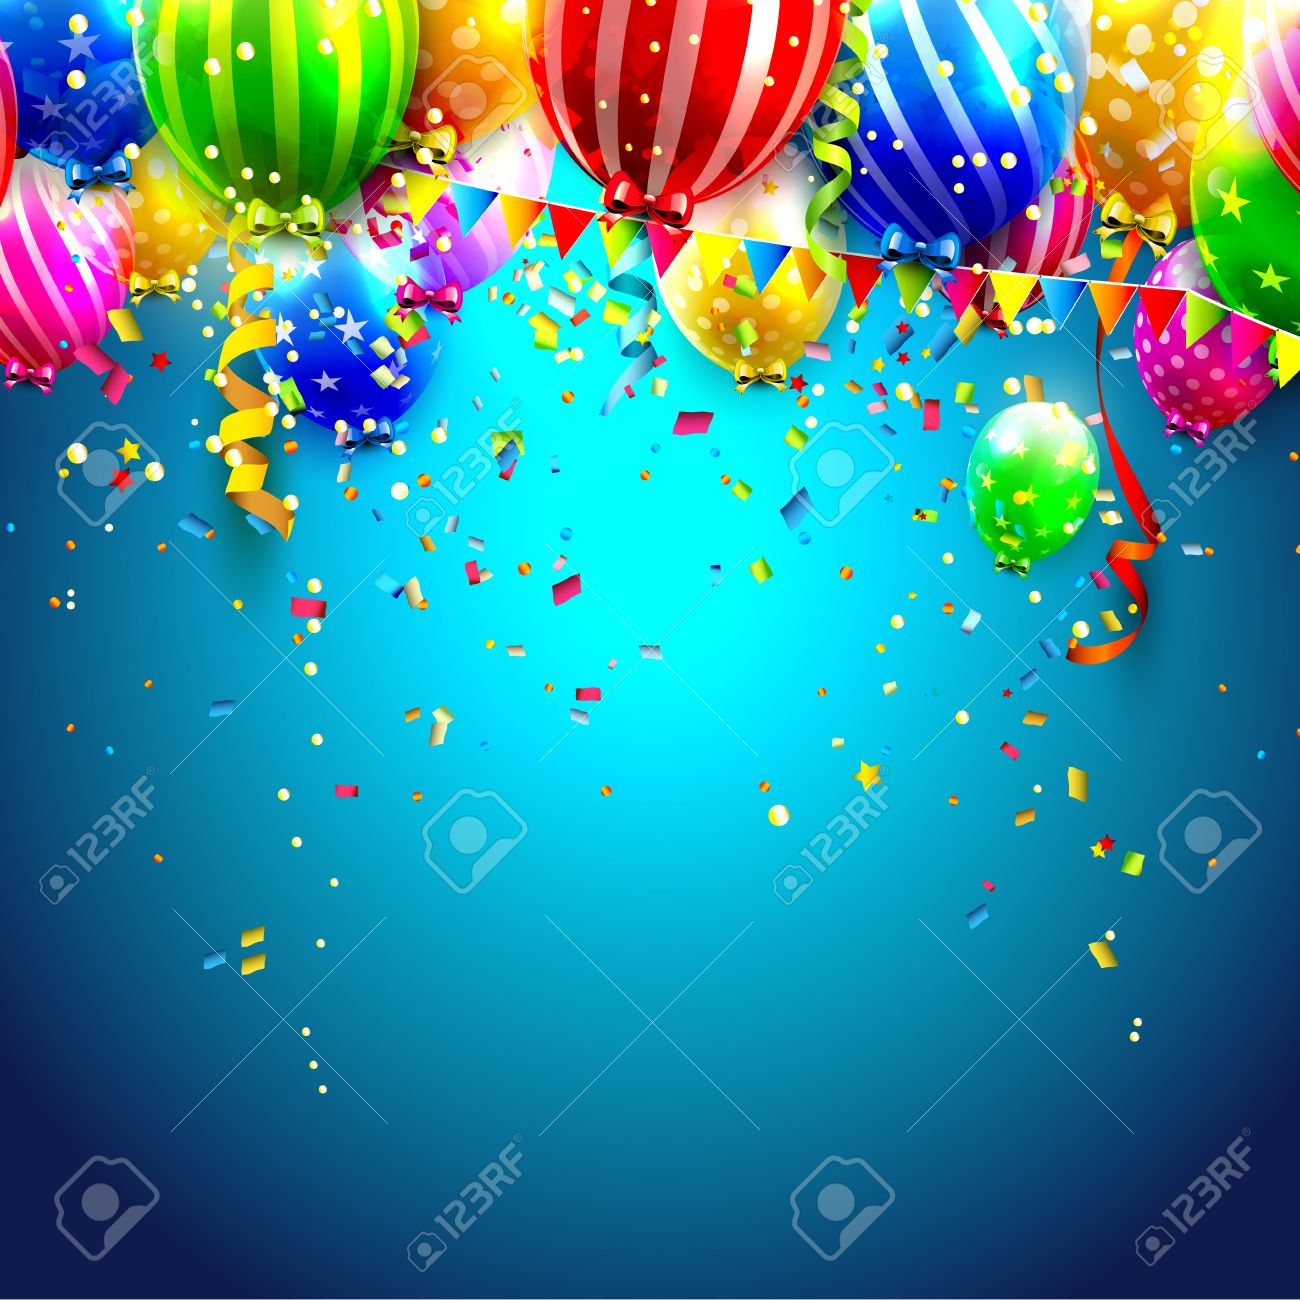 Birthday Card With Colorful Transparent Balloons And Confetti